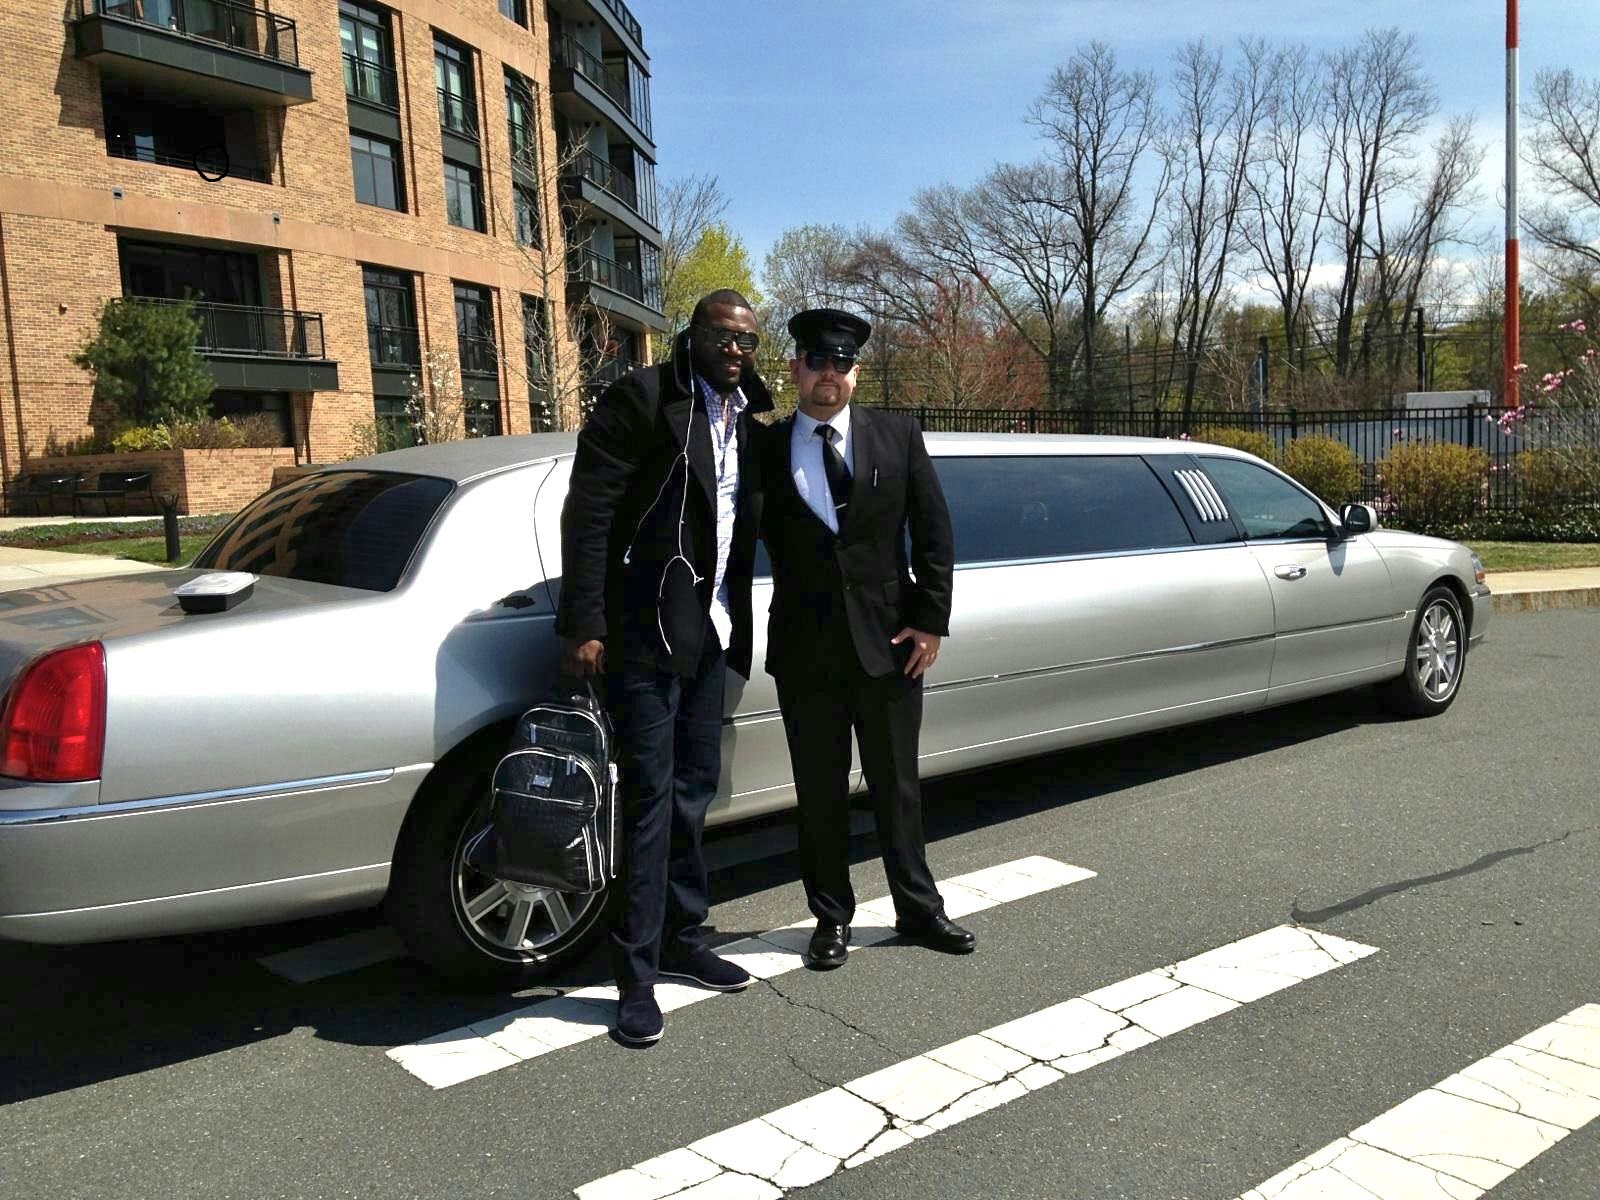 Limos for Rent  Clinton Ma 01510